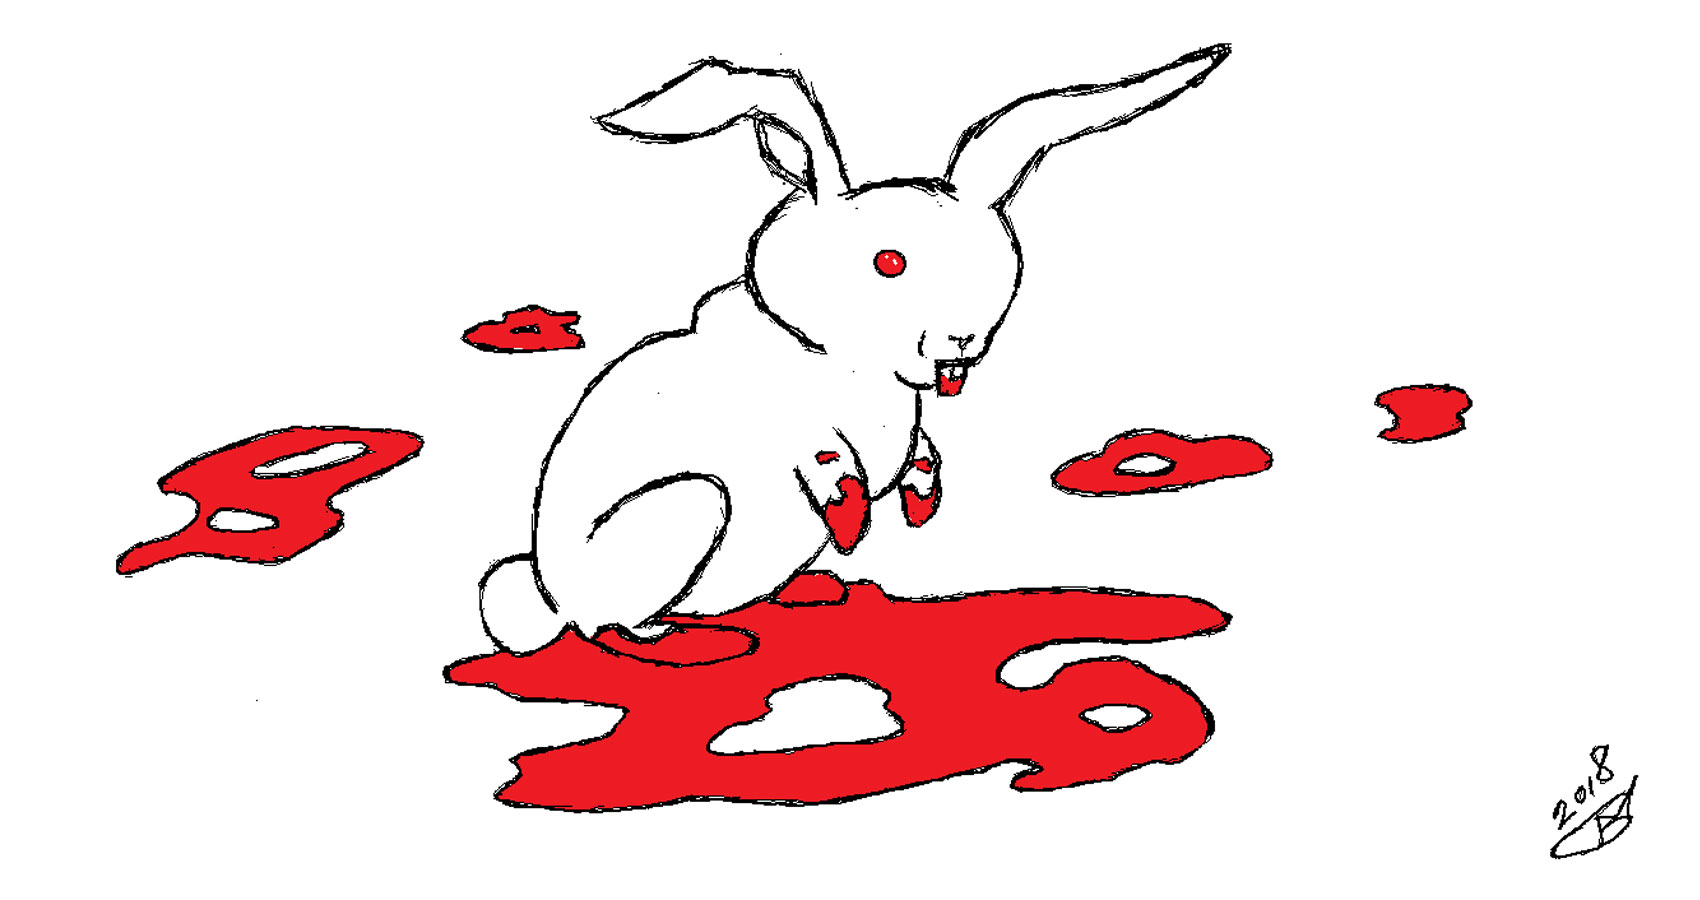 Killer Rabbit written by Robyn MacKinnon at Spillwords.com